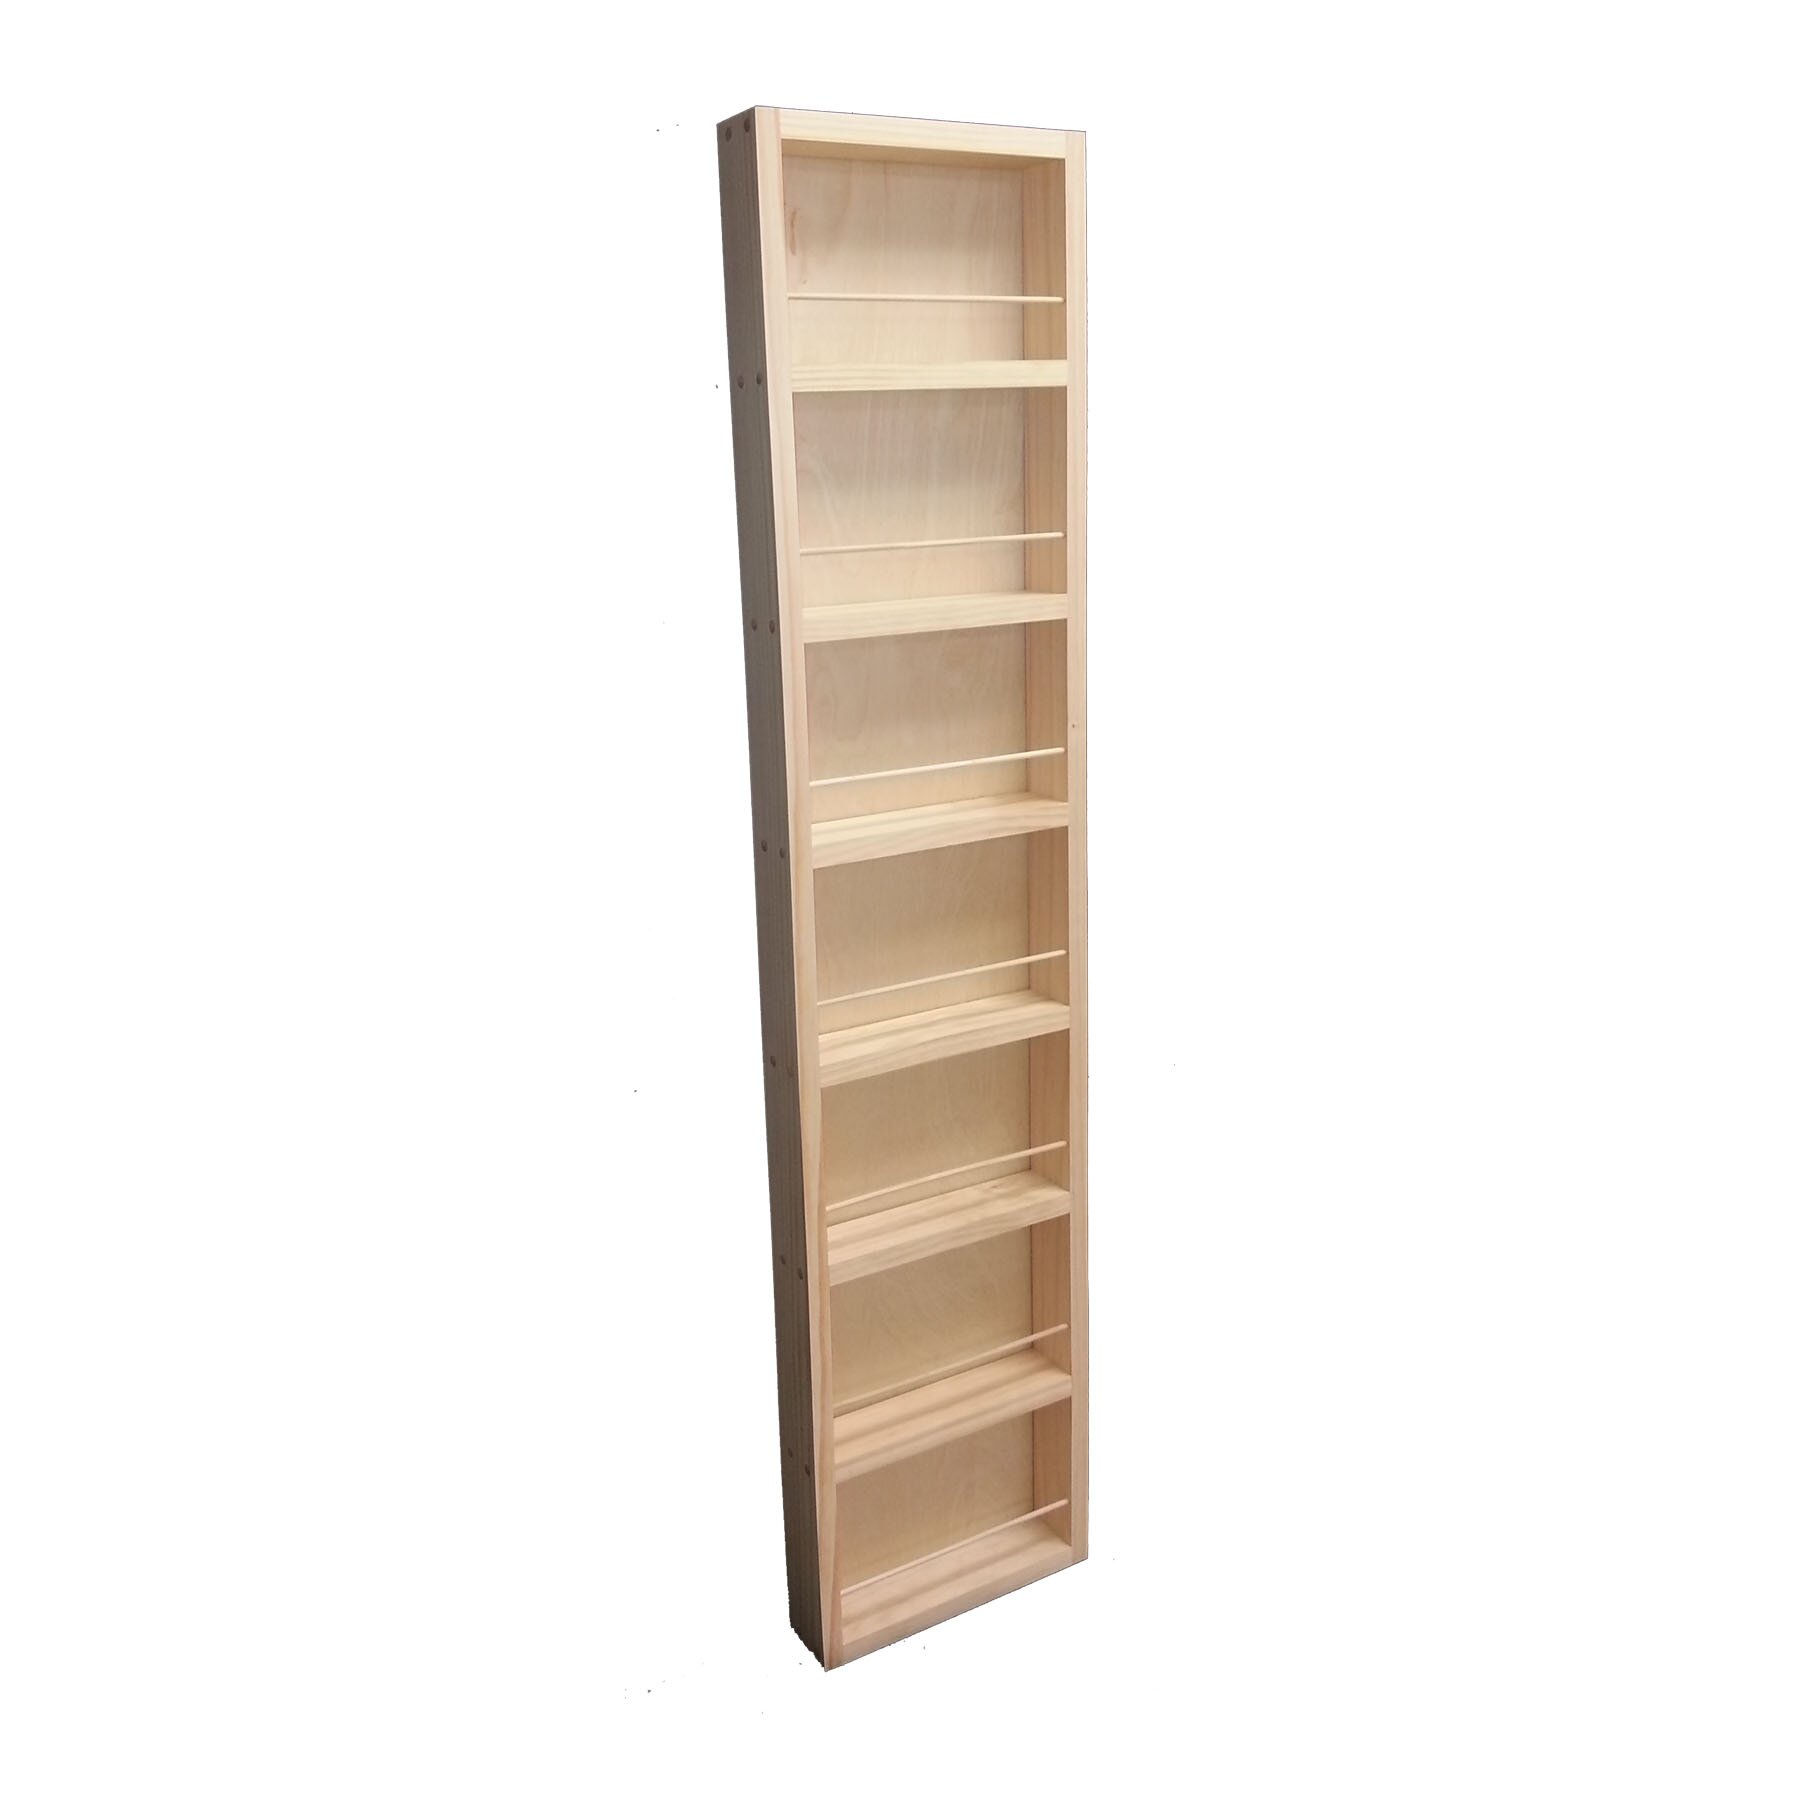 Wg Wood Products Midland Wall Mounted Spice Rack Amp Reviews